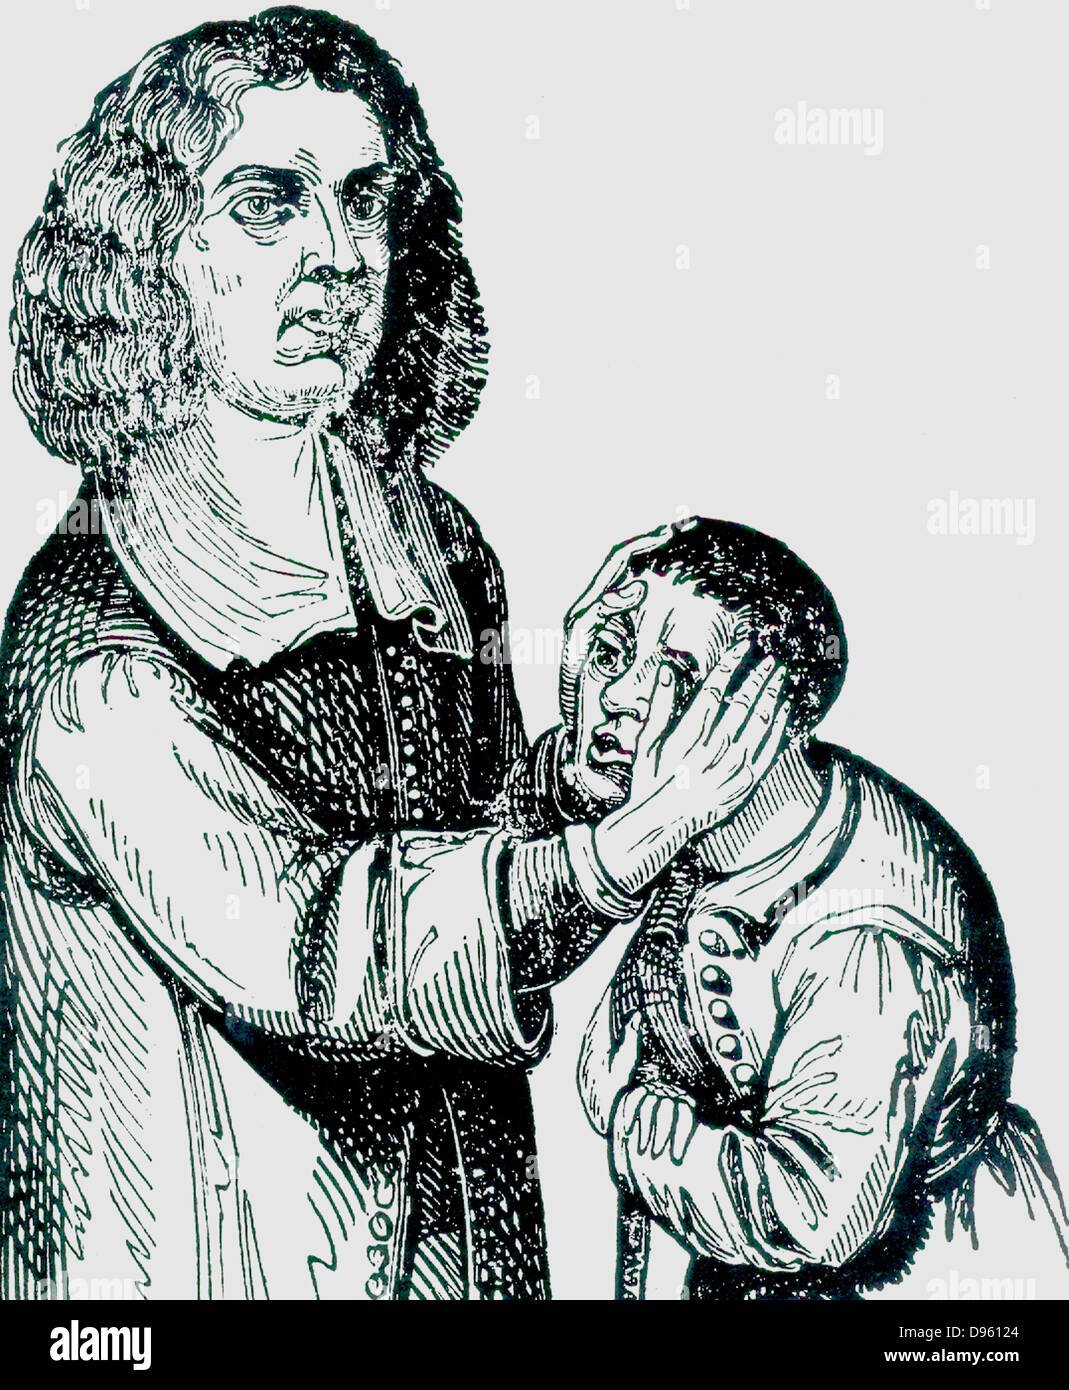 Valentine Greatracks or Greatorex (1628-1666), known as Grearakes the Stroker. Greatracks 'touched' for - Stock Image